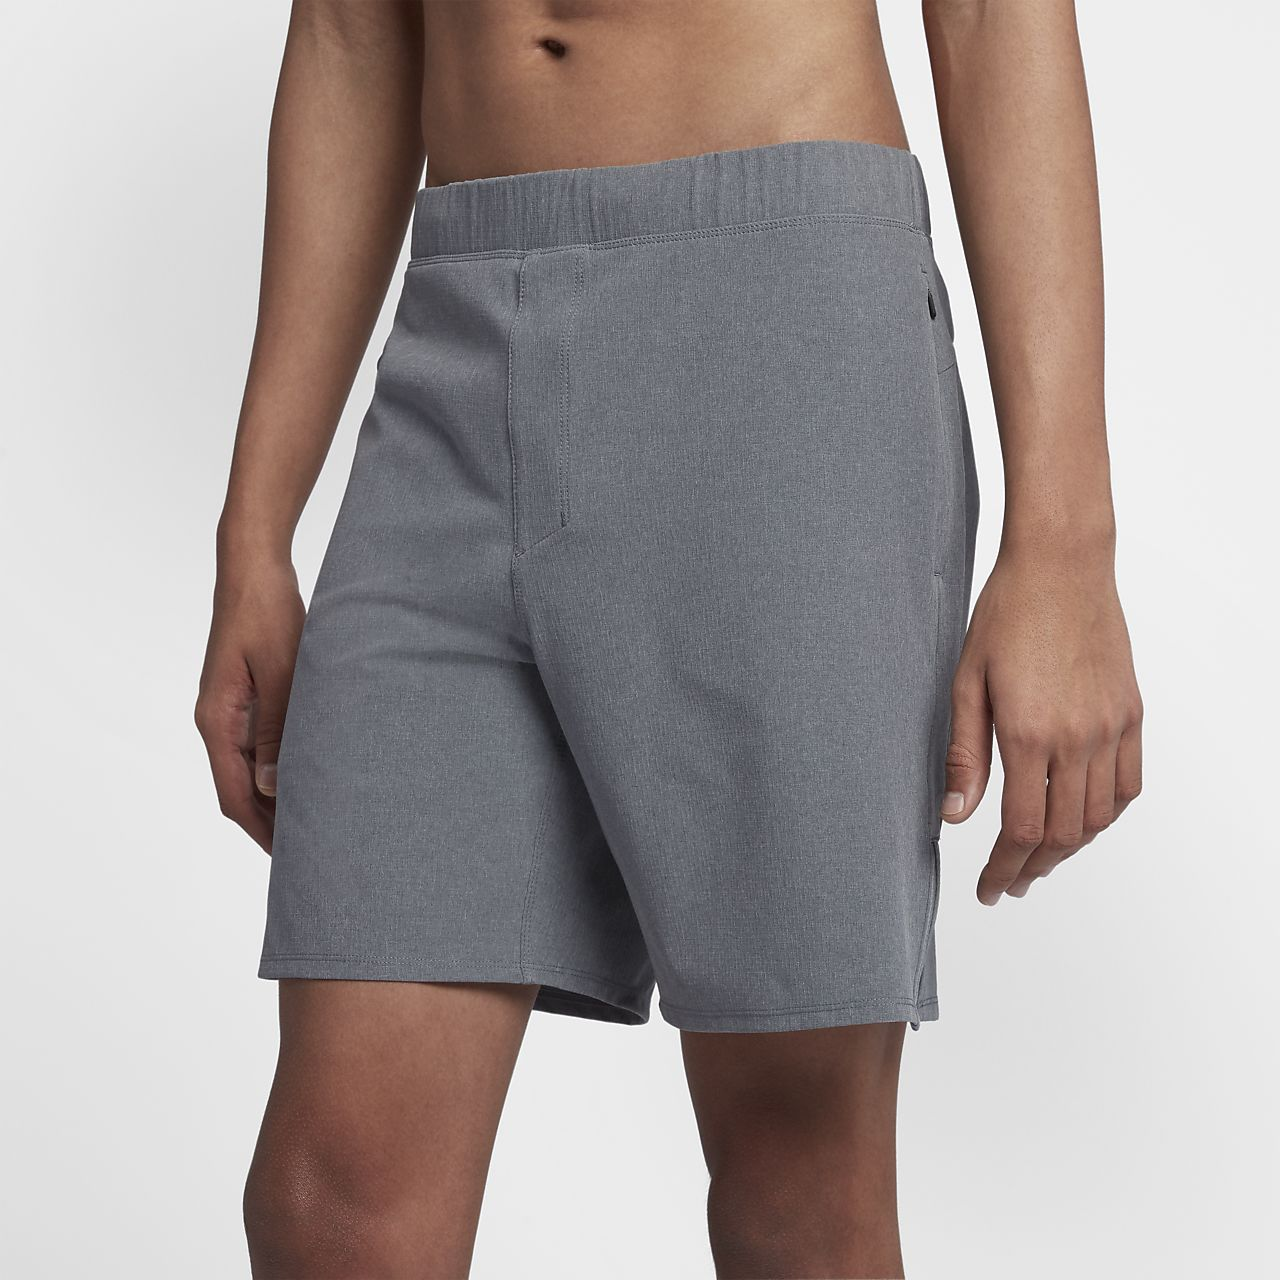 Hurley Alpha Trainer Plus Herenshorts van 45,5 cm